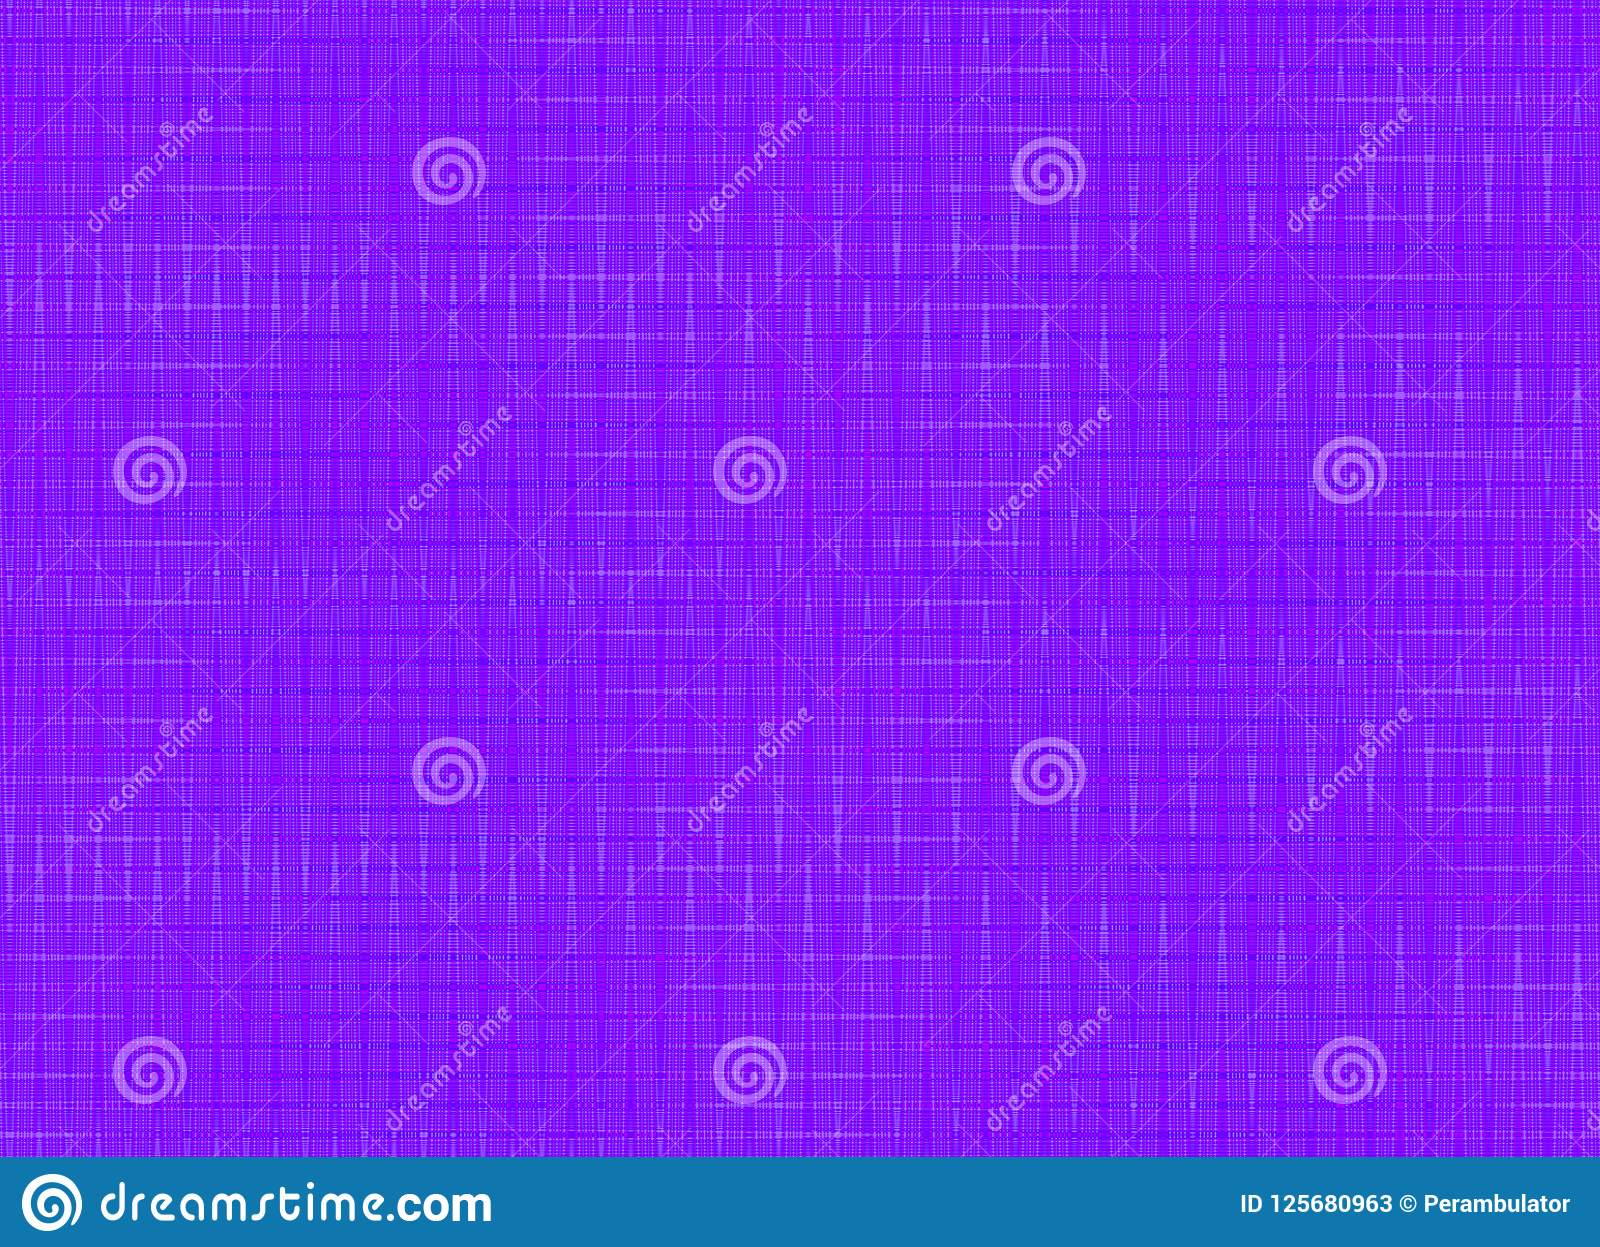 BLUE AND PURPLE MESH BACKGROUND